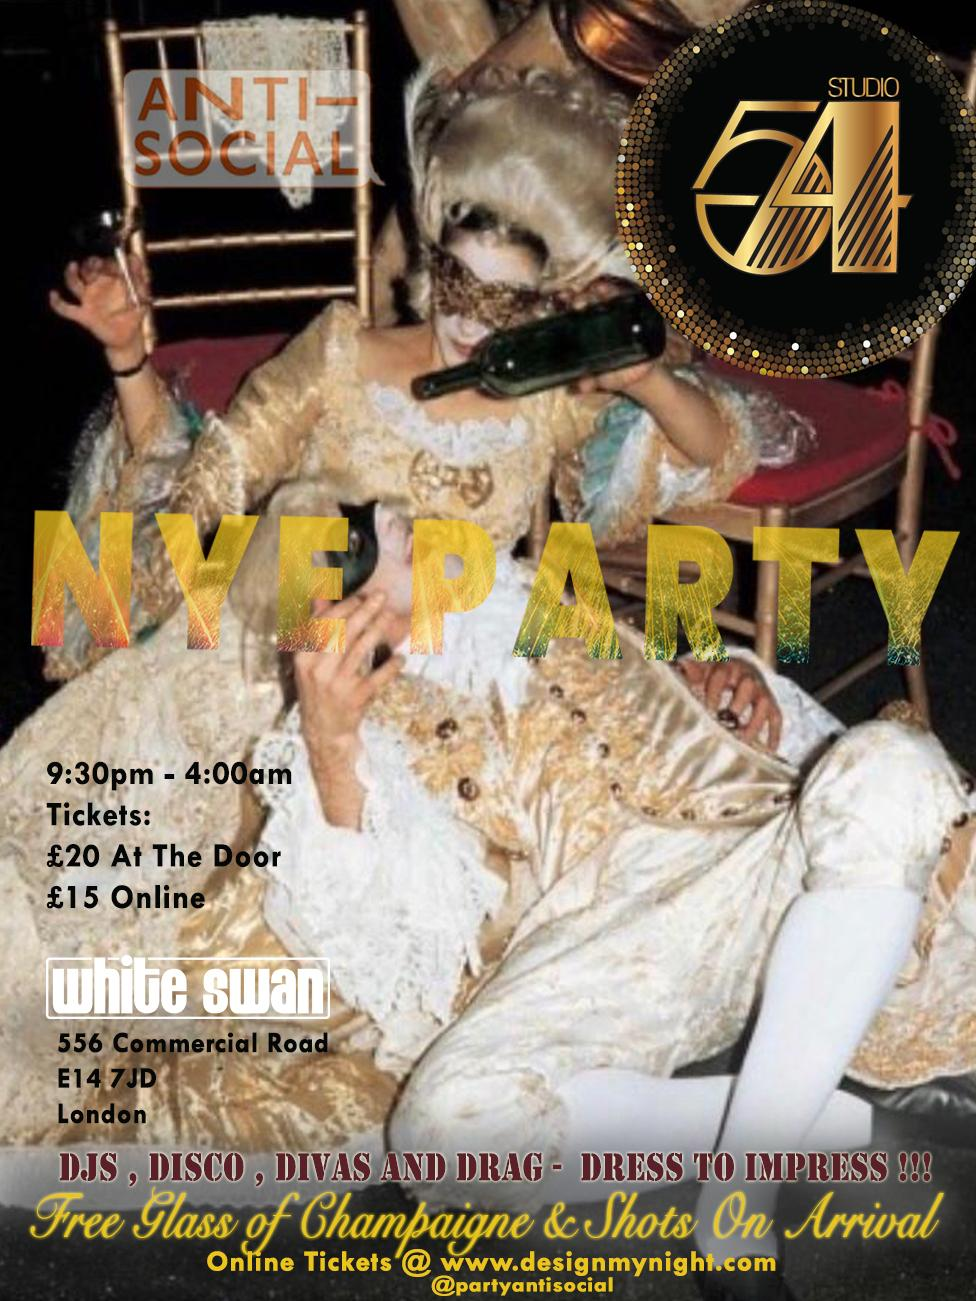 Anti Social New Years Eve studio 54 party